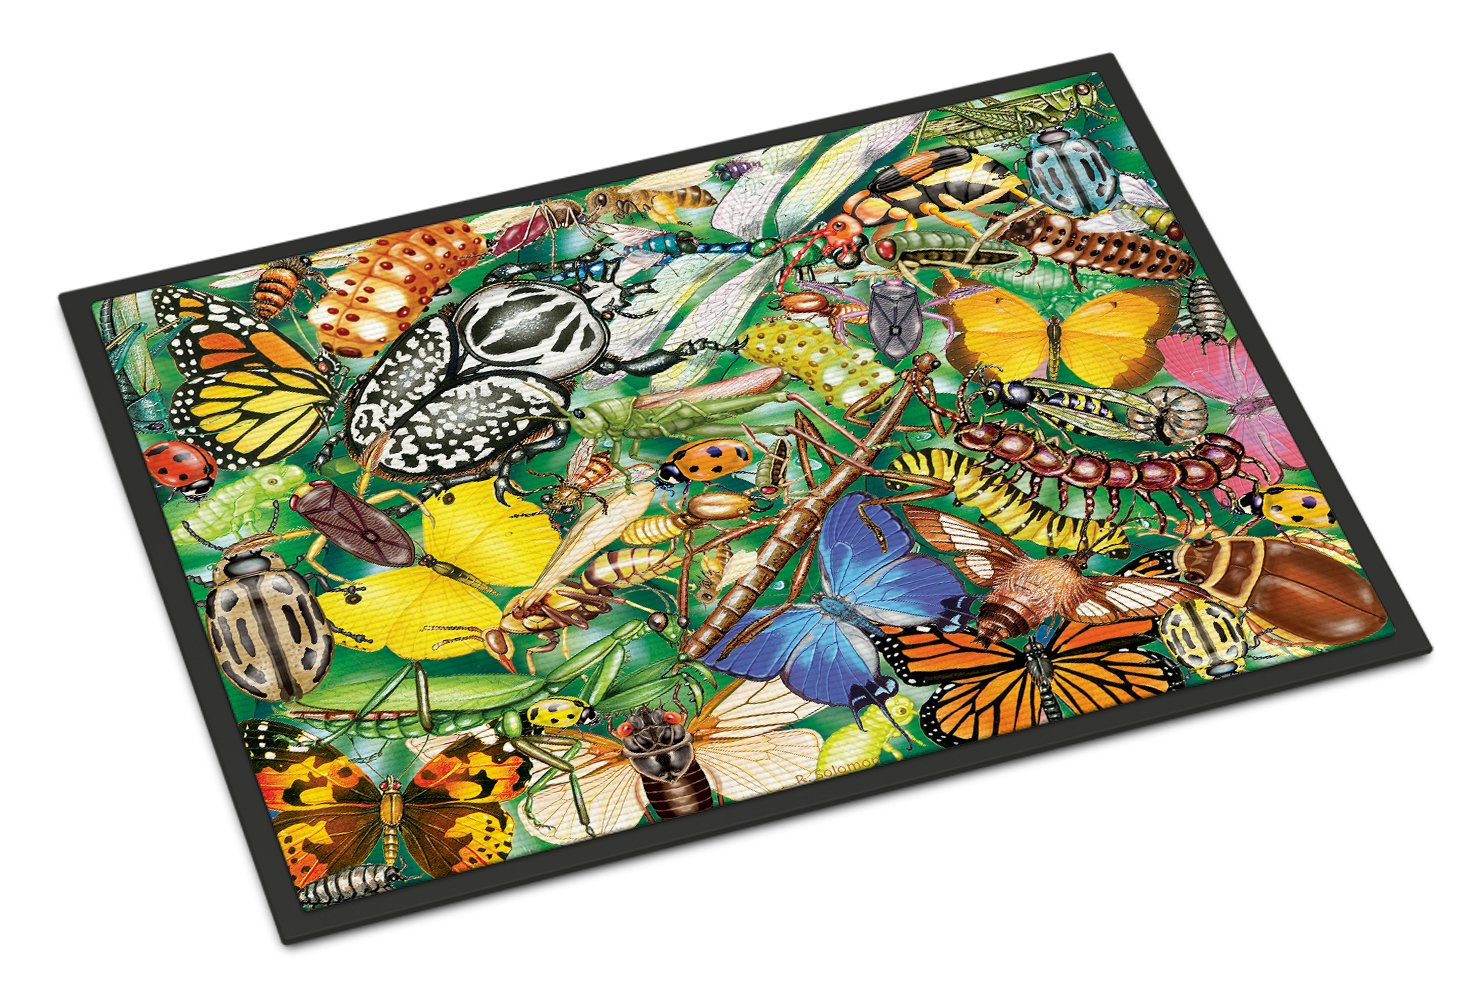 Insects & Butterflies Bug World Indoor or Outdoor Mat 24x36 PRS4059JMAT by Caroline's Treasures